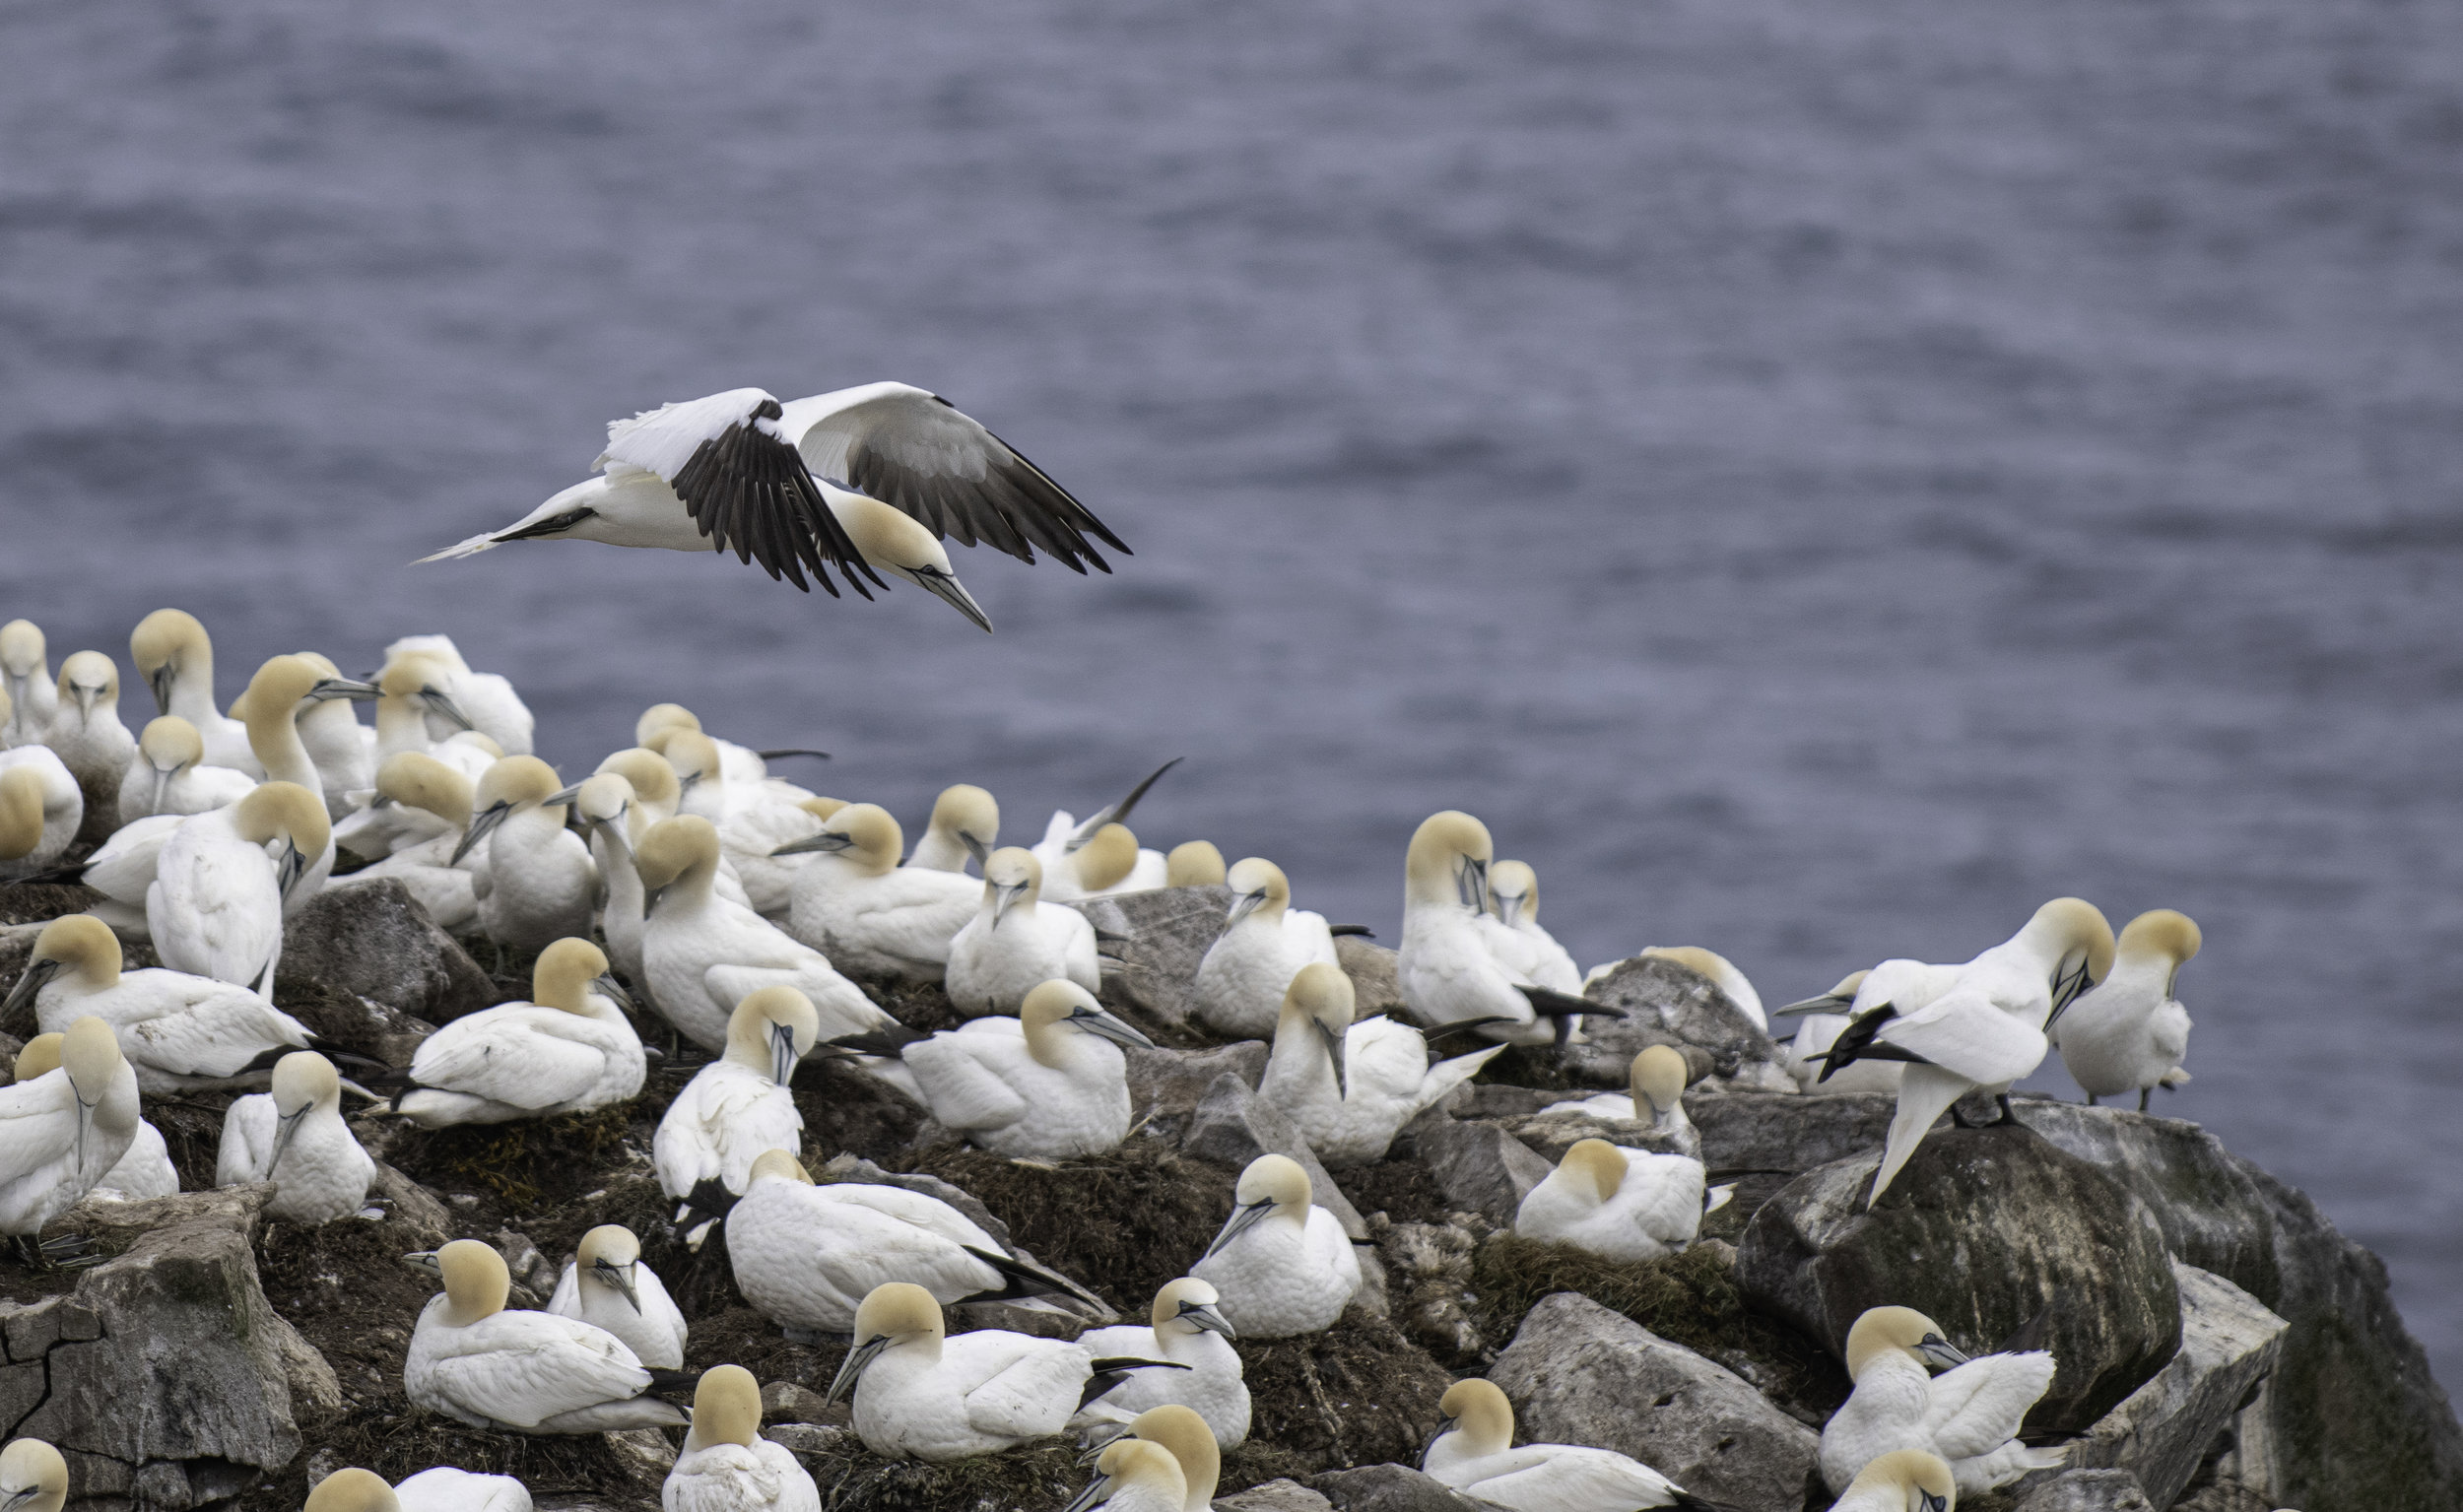 northern gannet flying copy.jpg